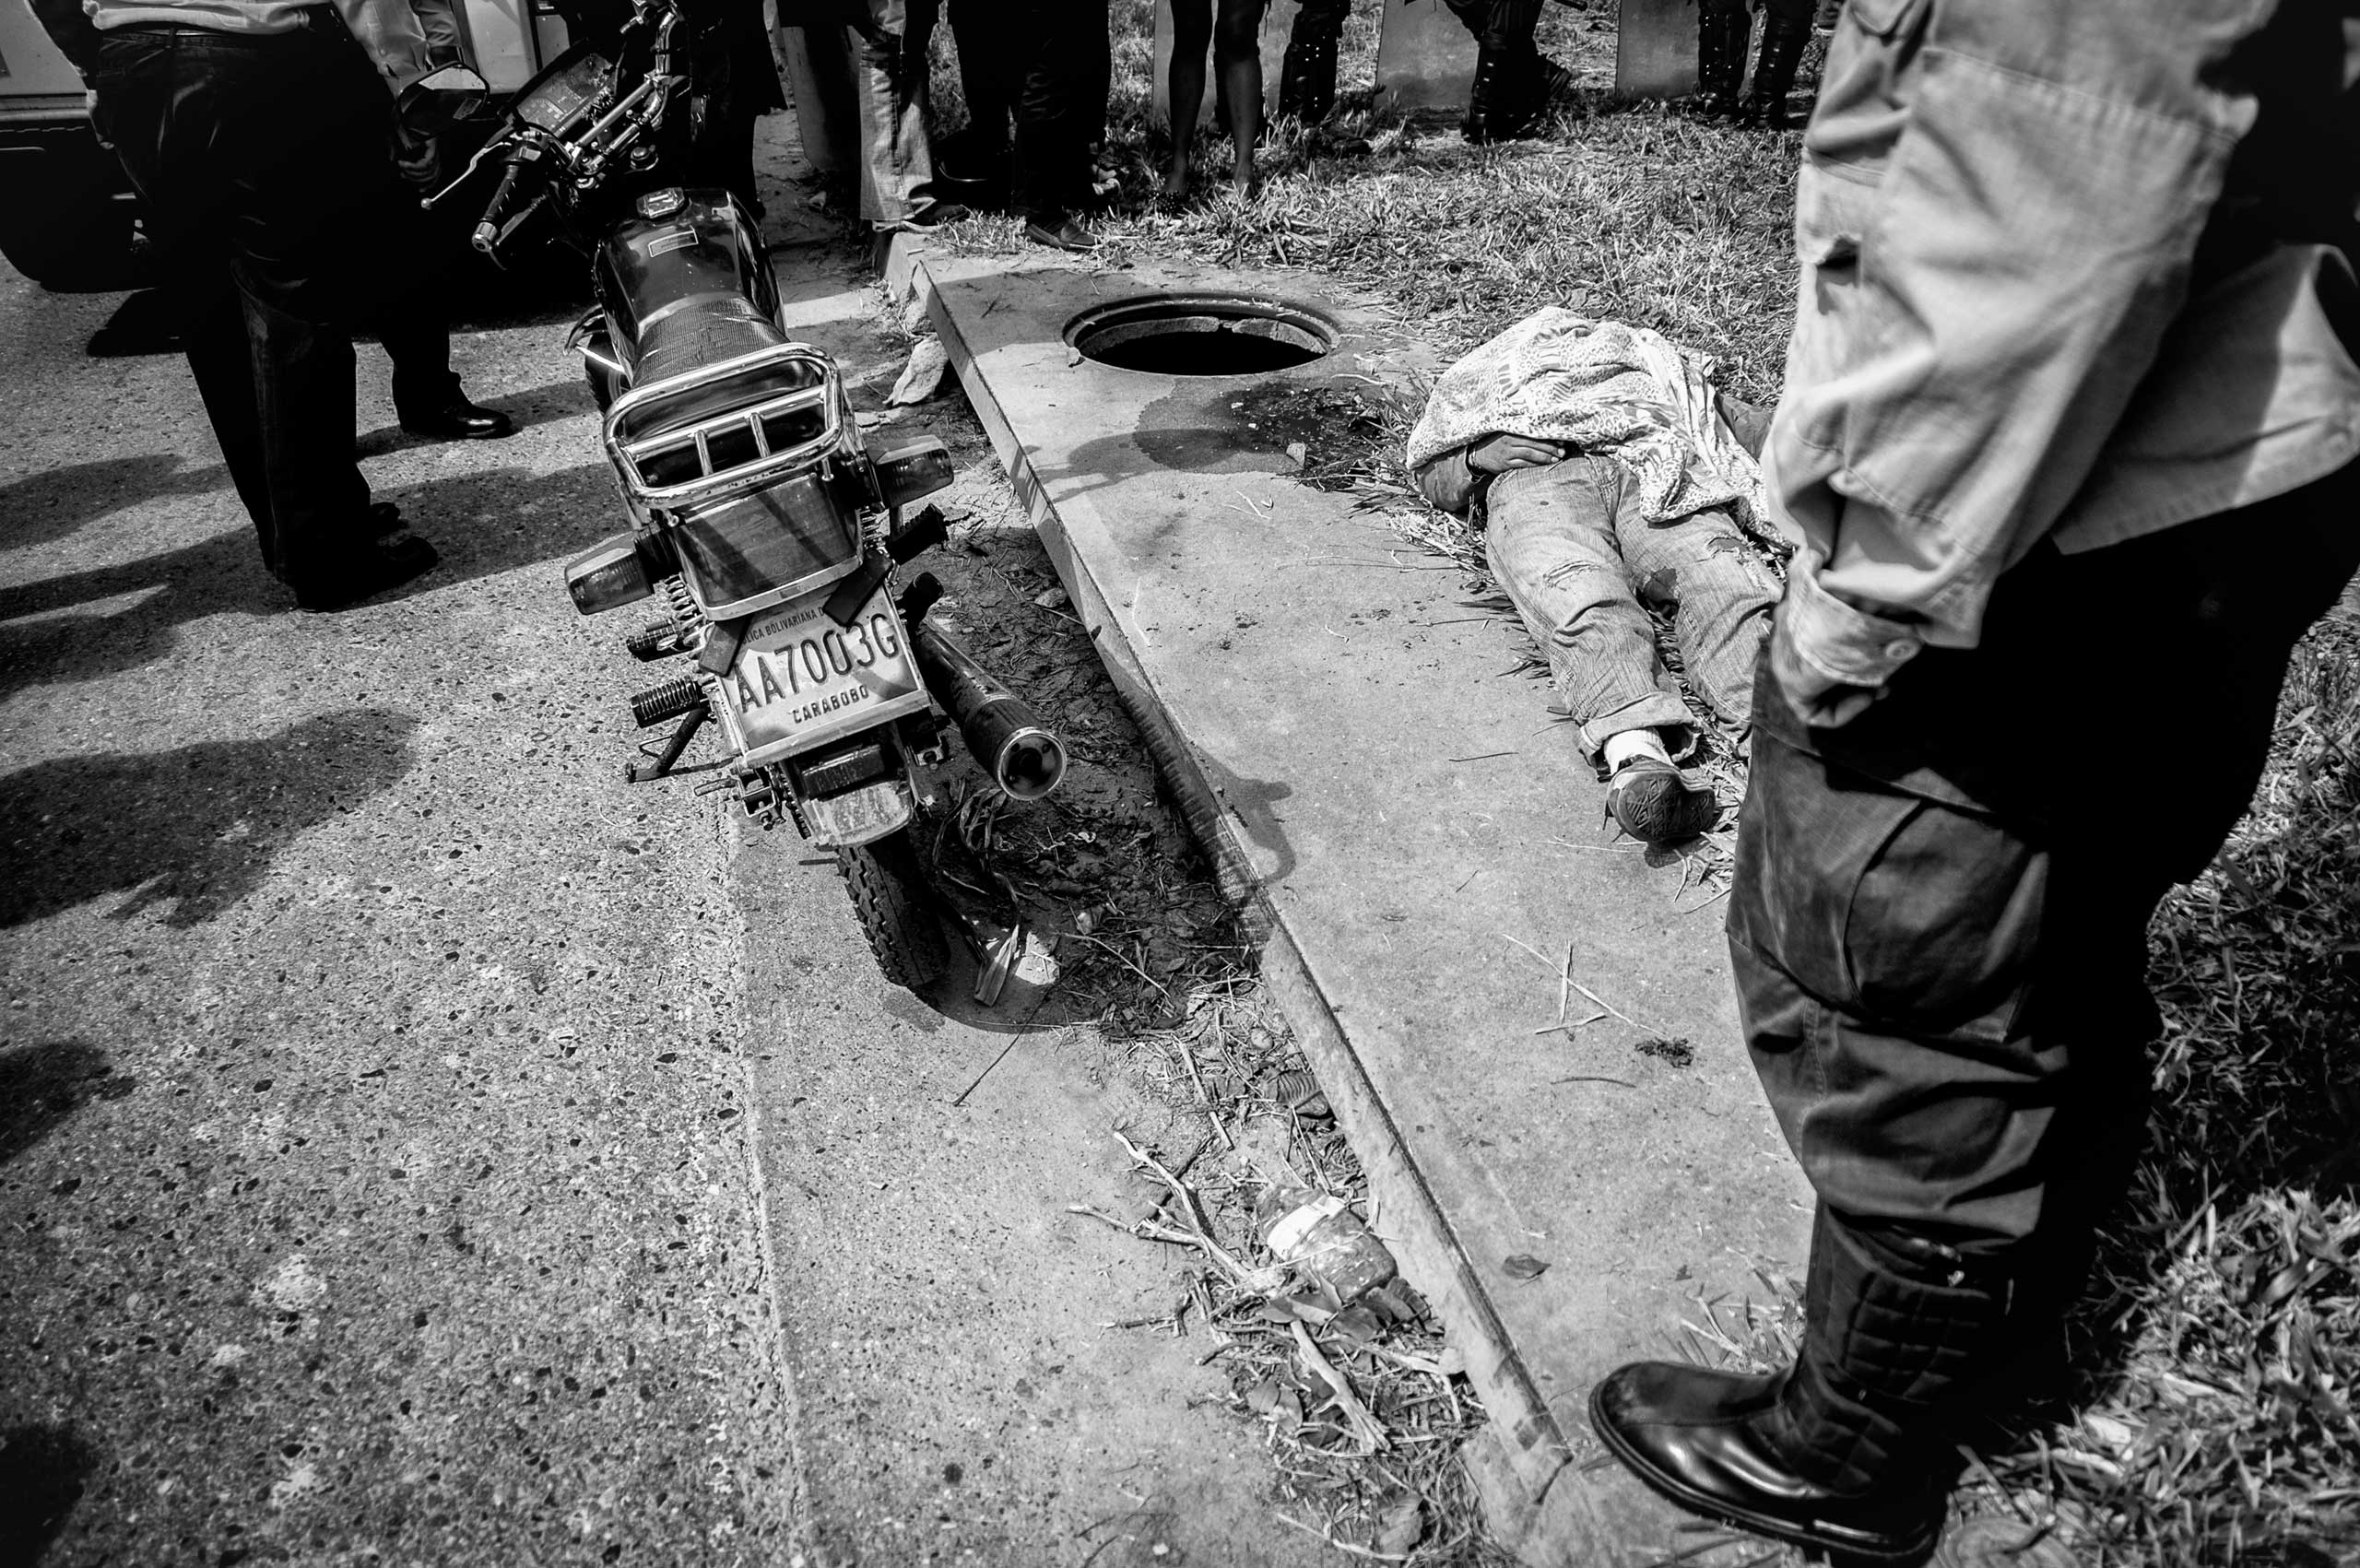 Luis Alfredo Torres, a motorbike taxi rider, was executed on Caracas' main highway during an attempted robbery of his bike. The supply shortage of spare parts makes riders the targets of gangs. Caracas, May 2013.